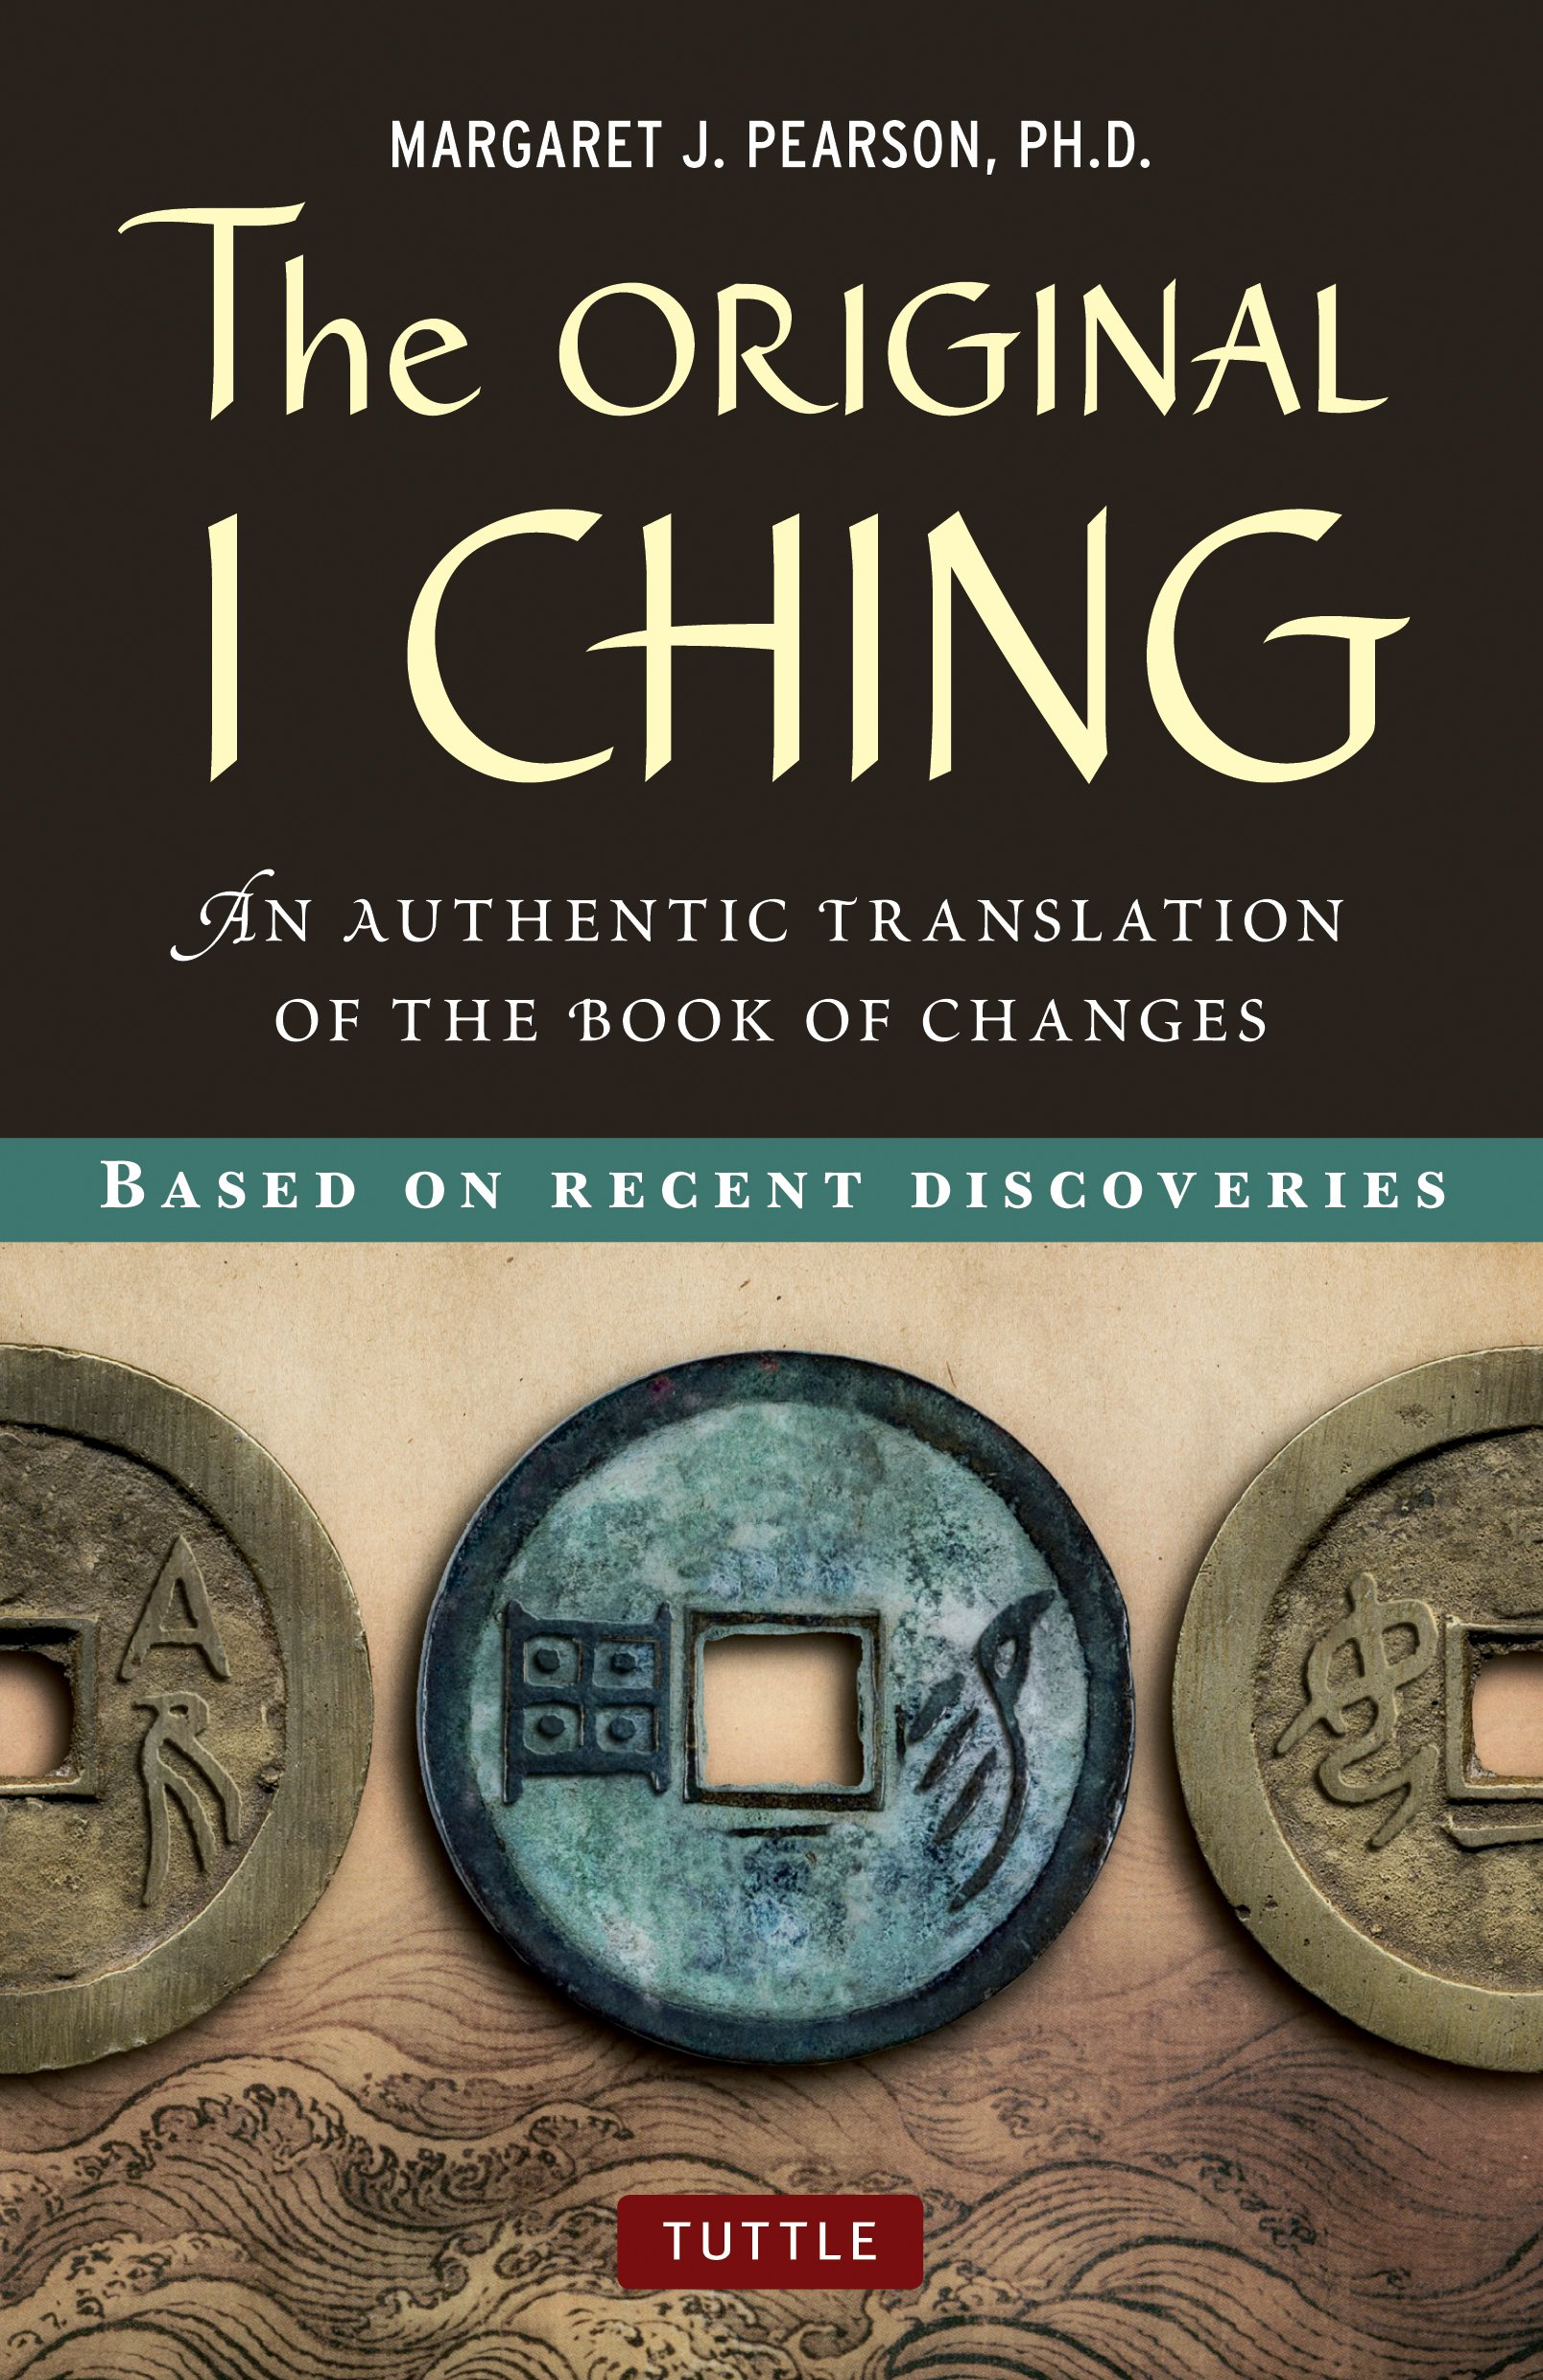 The Original I Ching: An Authentic Translation of the Book of Changes:  Margaret J. Pearson Ph.D.: 9780804841818: Amazon.com: Books